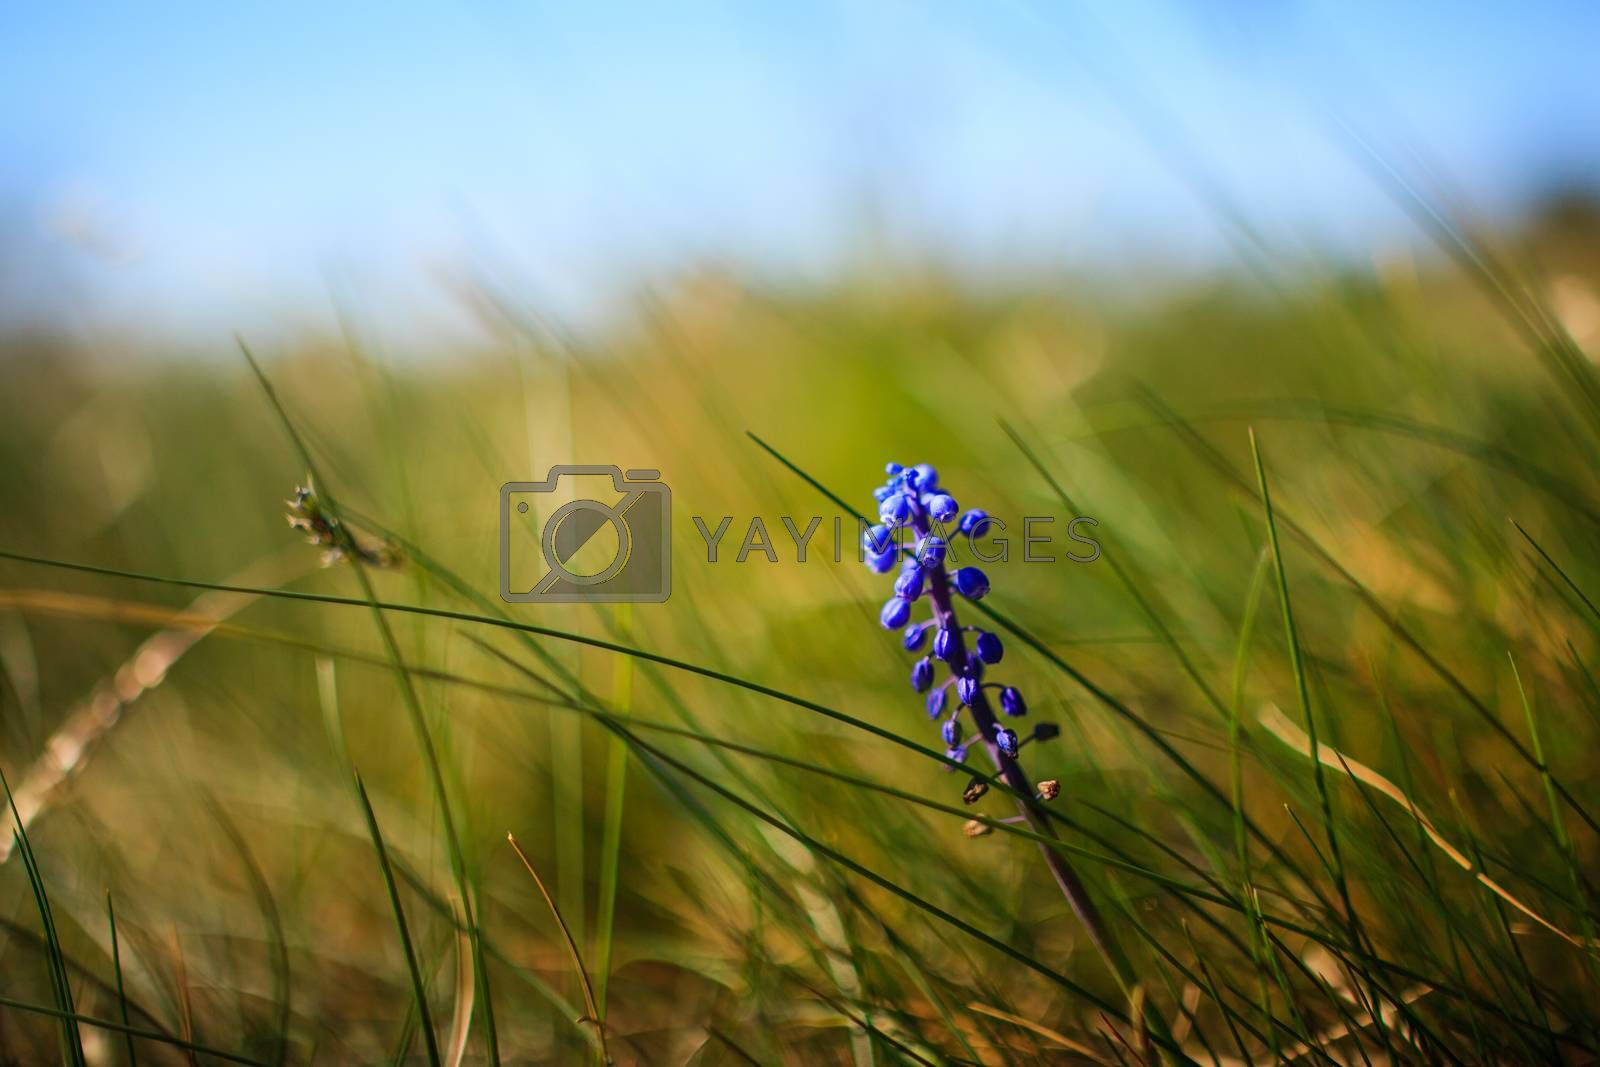 Flower Muscari neglectum, perennial bulbous plant, one of a number of species and genera known as Grape Hyacinth and in particular Common Grape Hyacinth